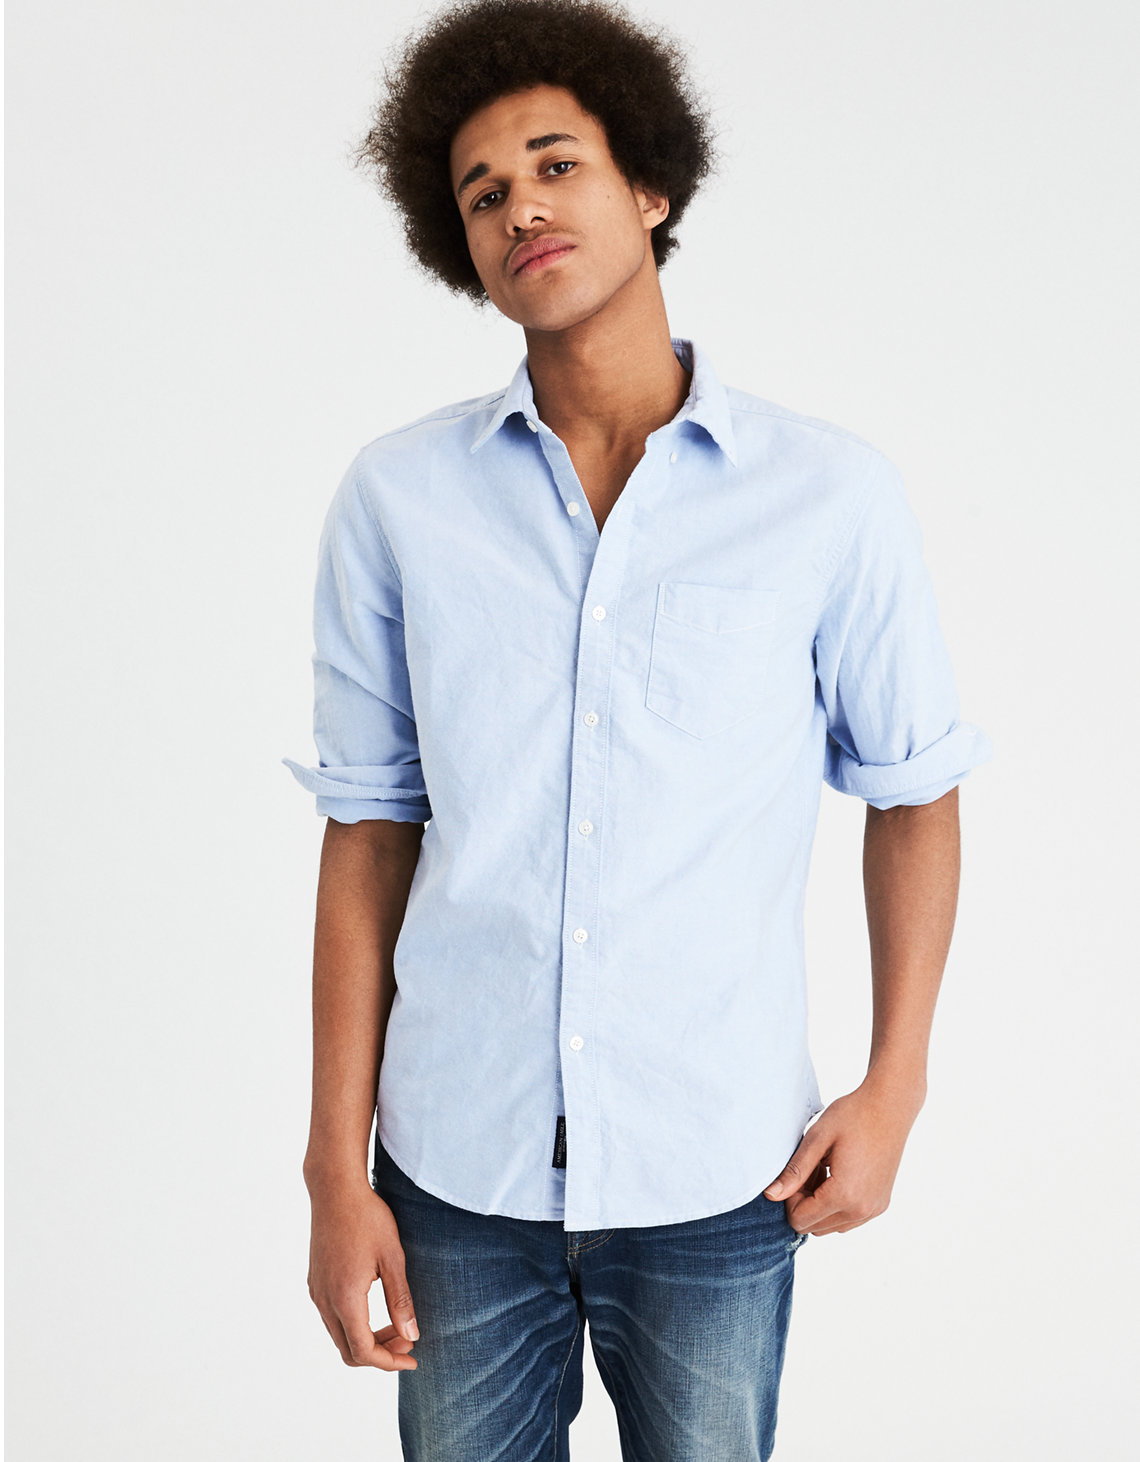 fc8a1f517684 AE Long Sleeve Oxford Button Up Shirt